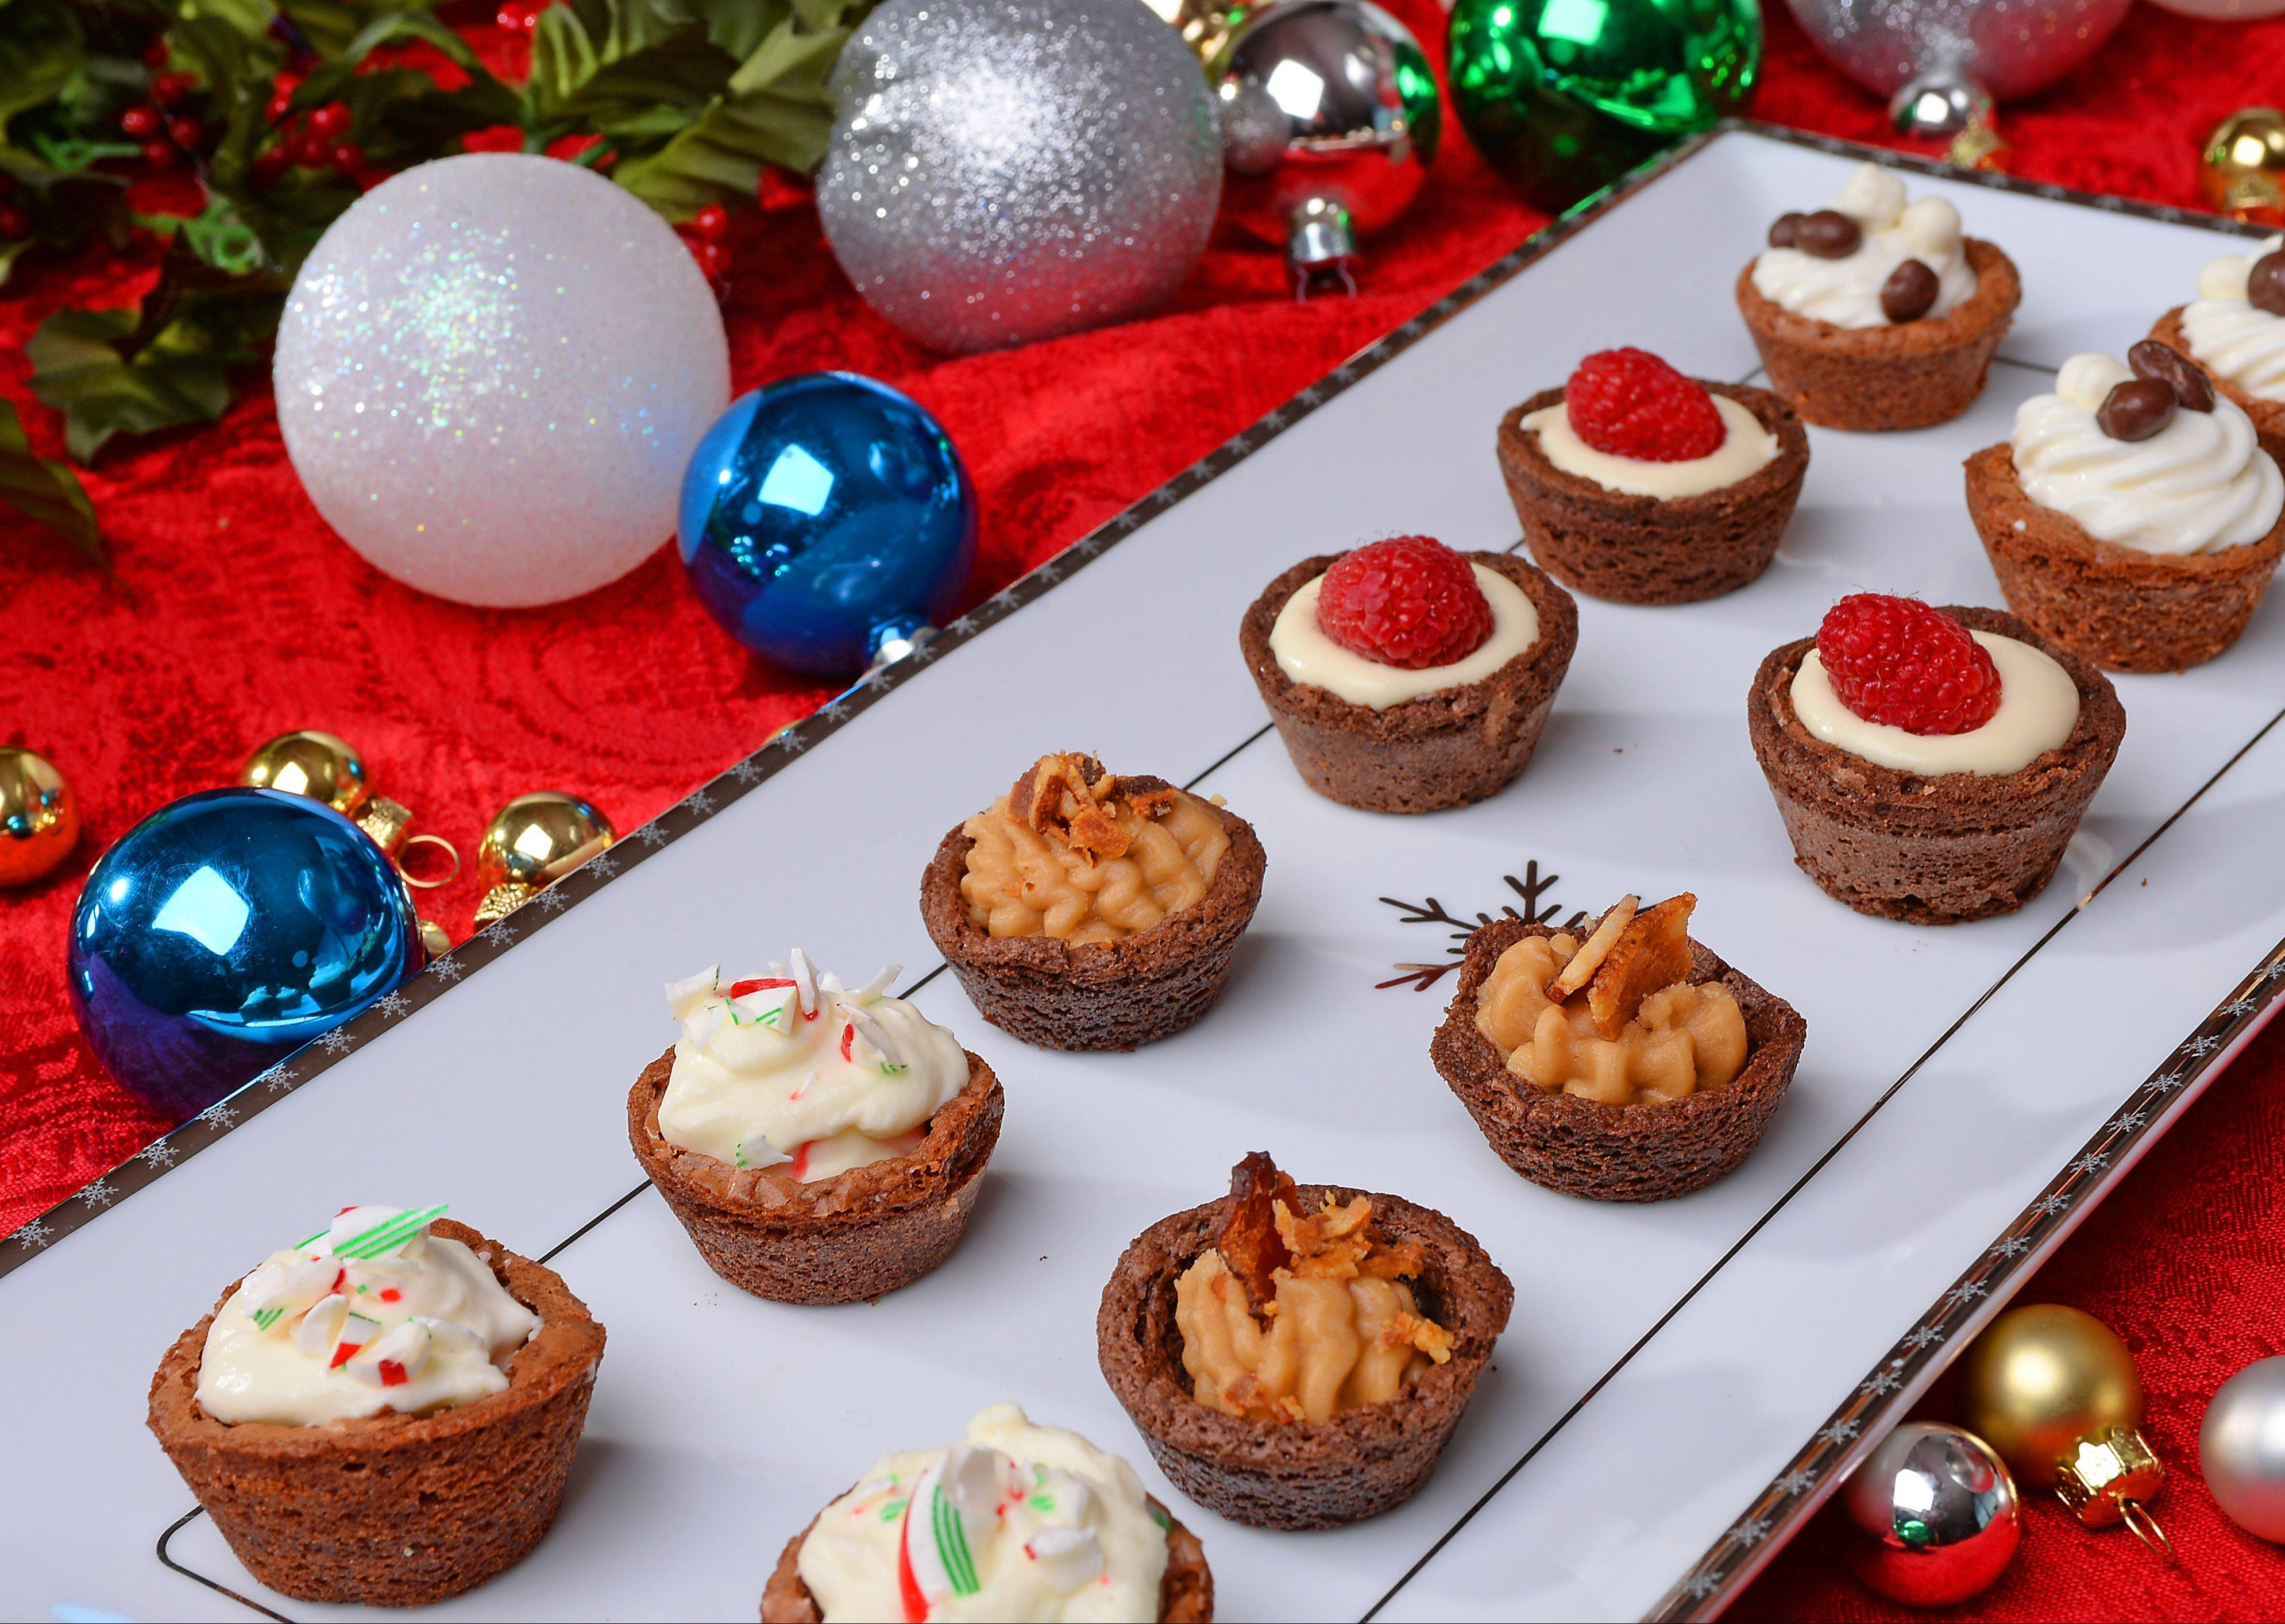 Festive and easy-to-make brownie bites add sparkle to holiday treat tables.